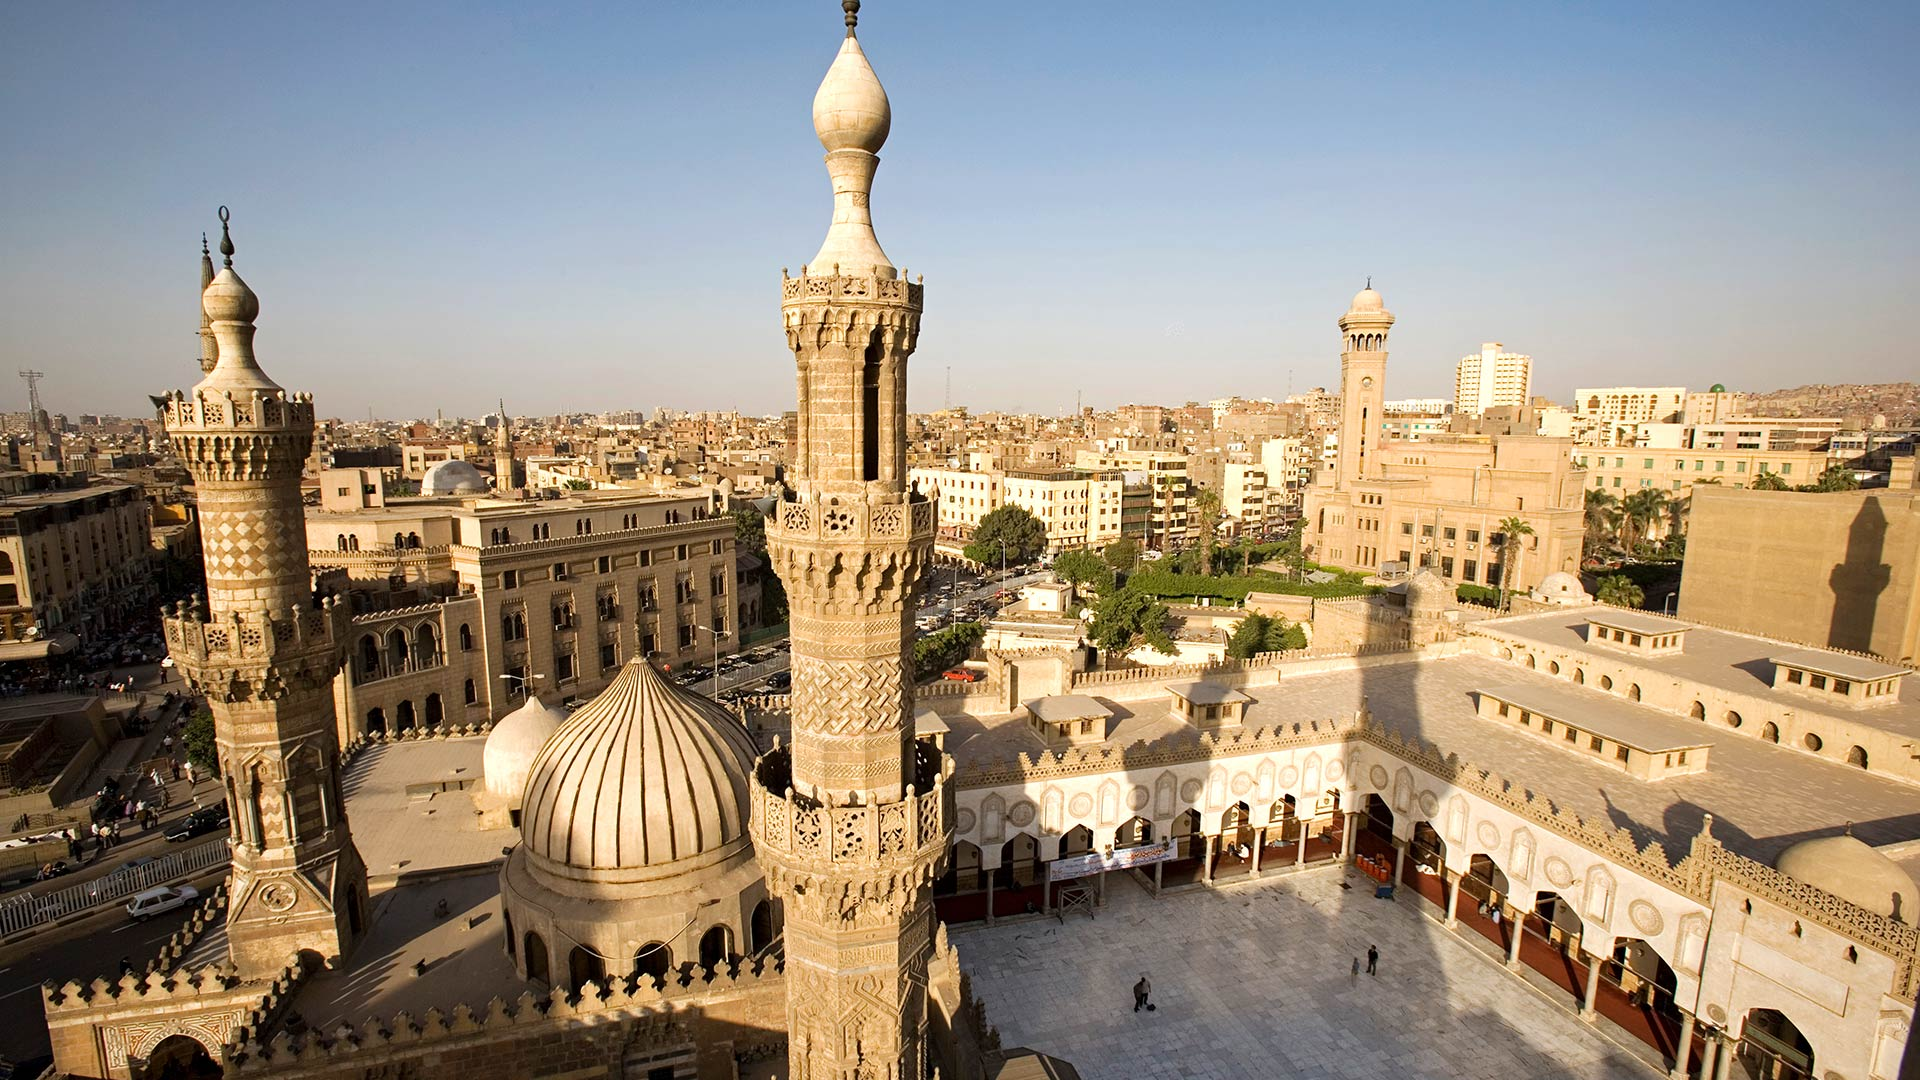 The minarets of the Al Azhar Mosque in Islamic Cairo, Egypt